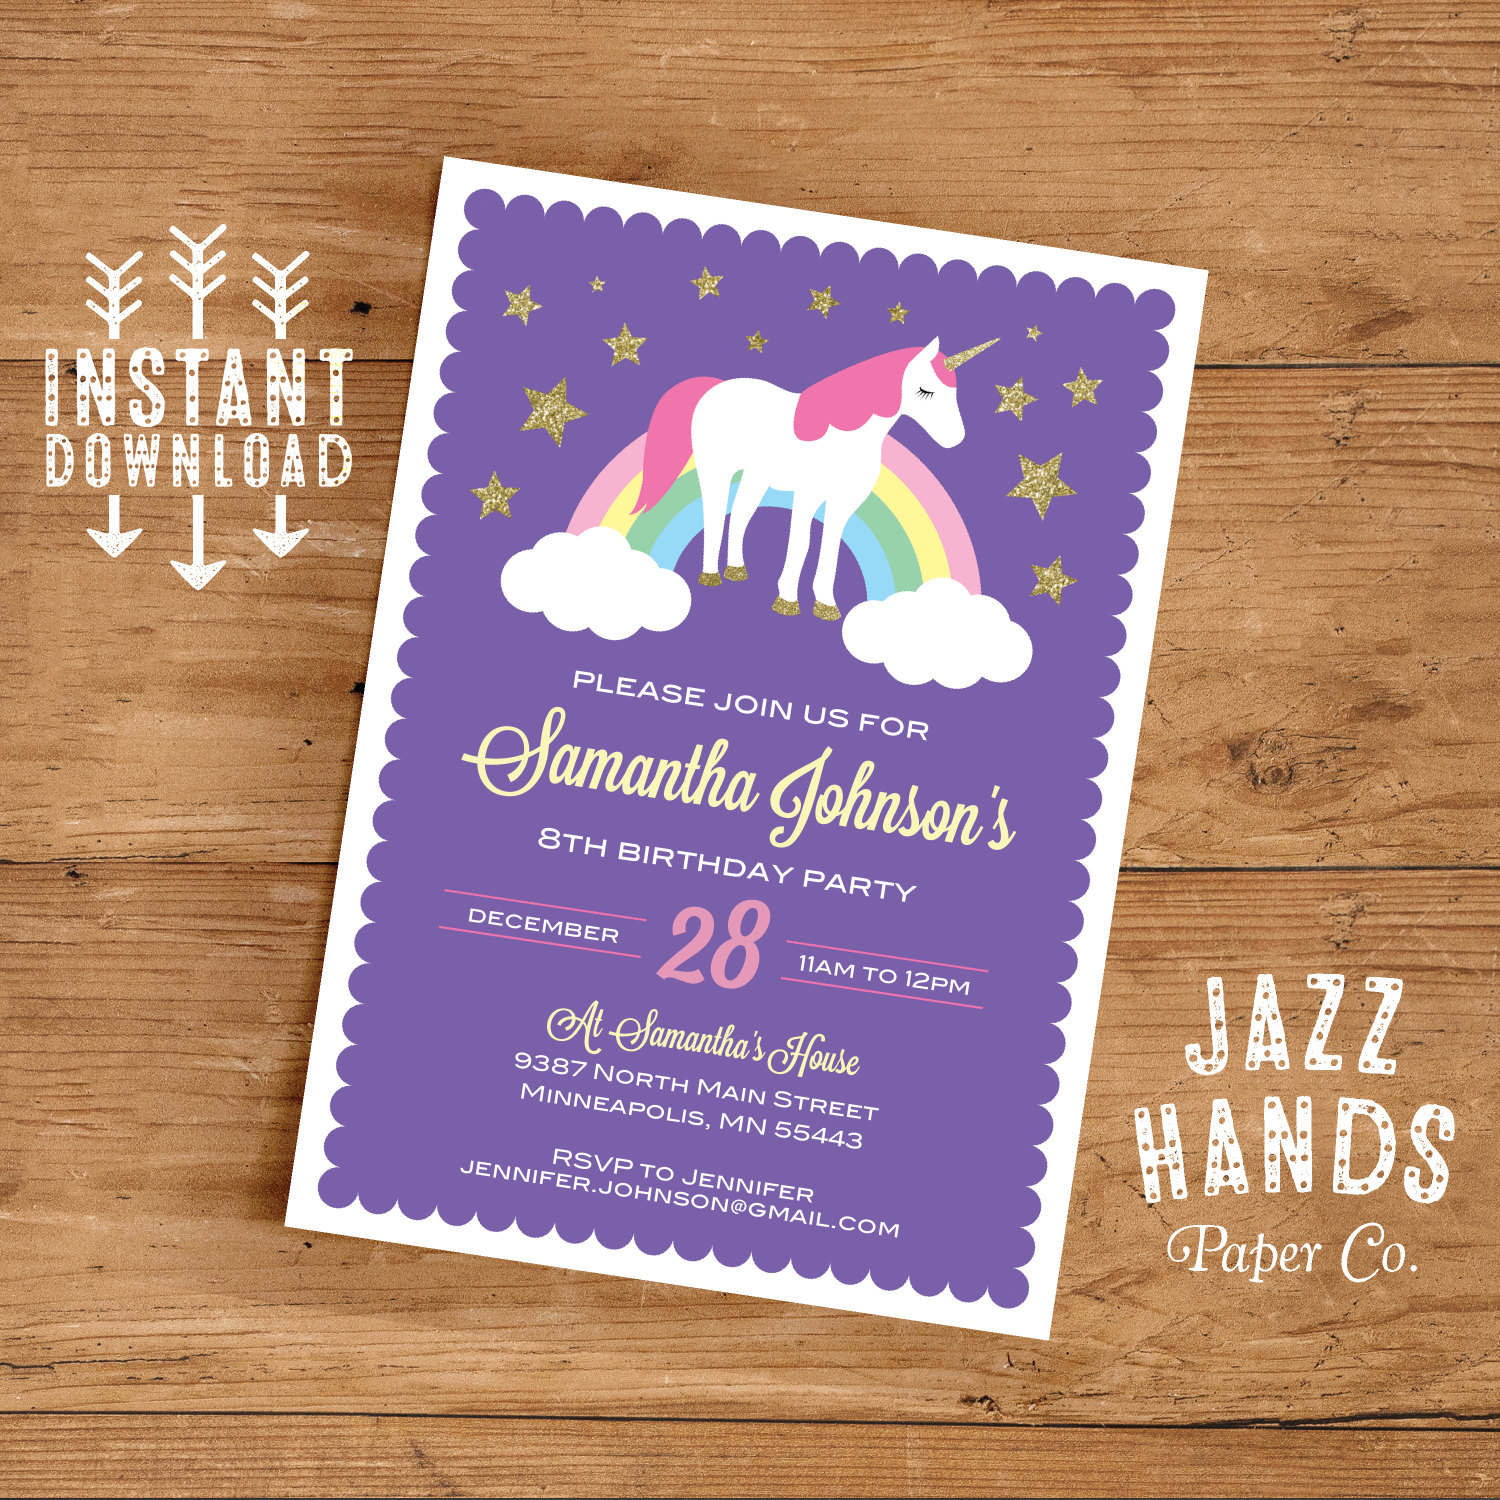 It's just a picture of Influential Printable Unicorn Invitations